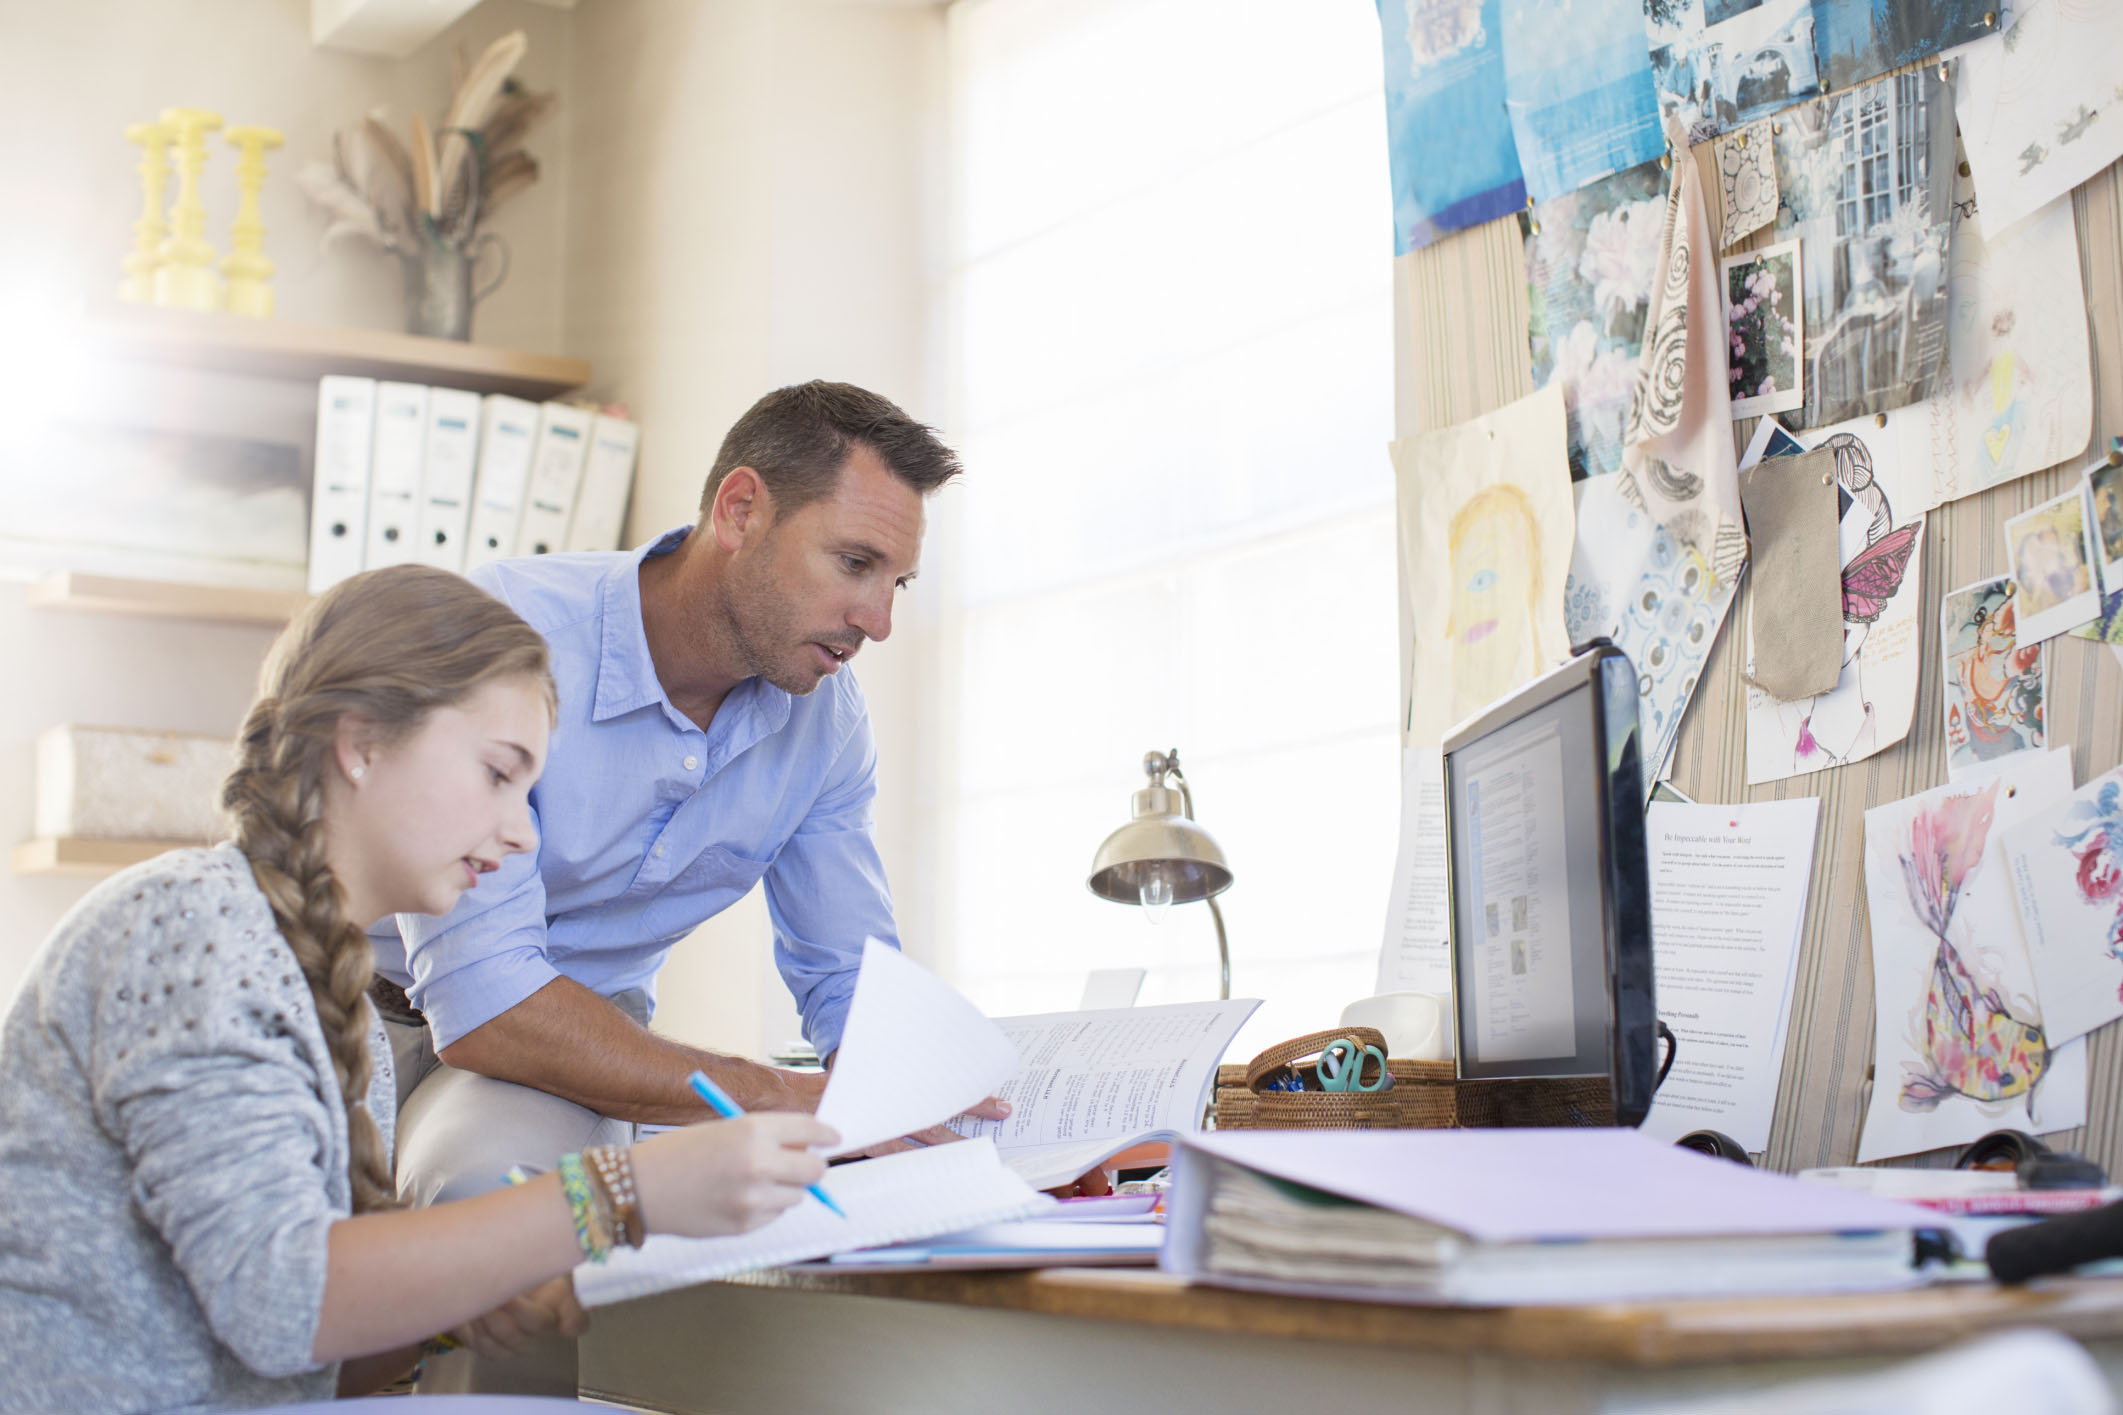 Essay on parental perspective for admission for college